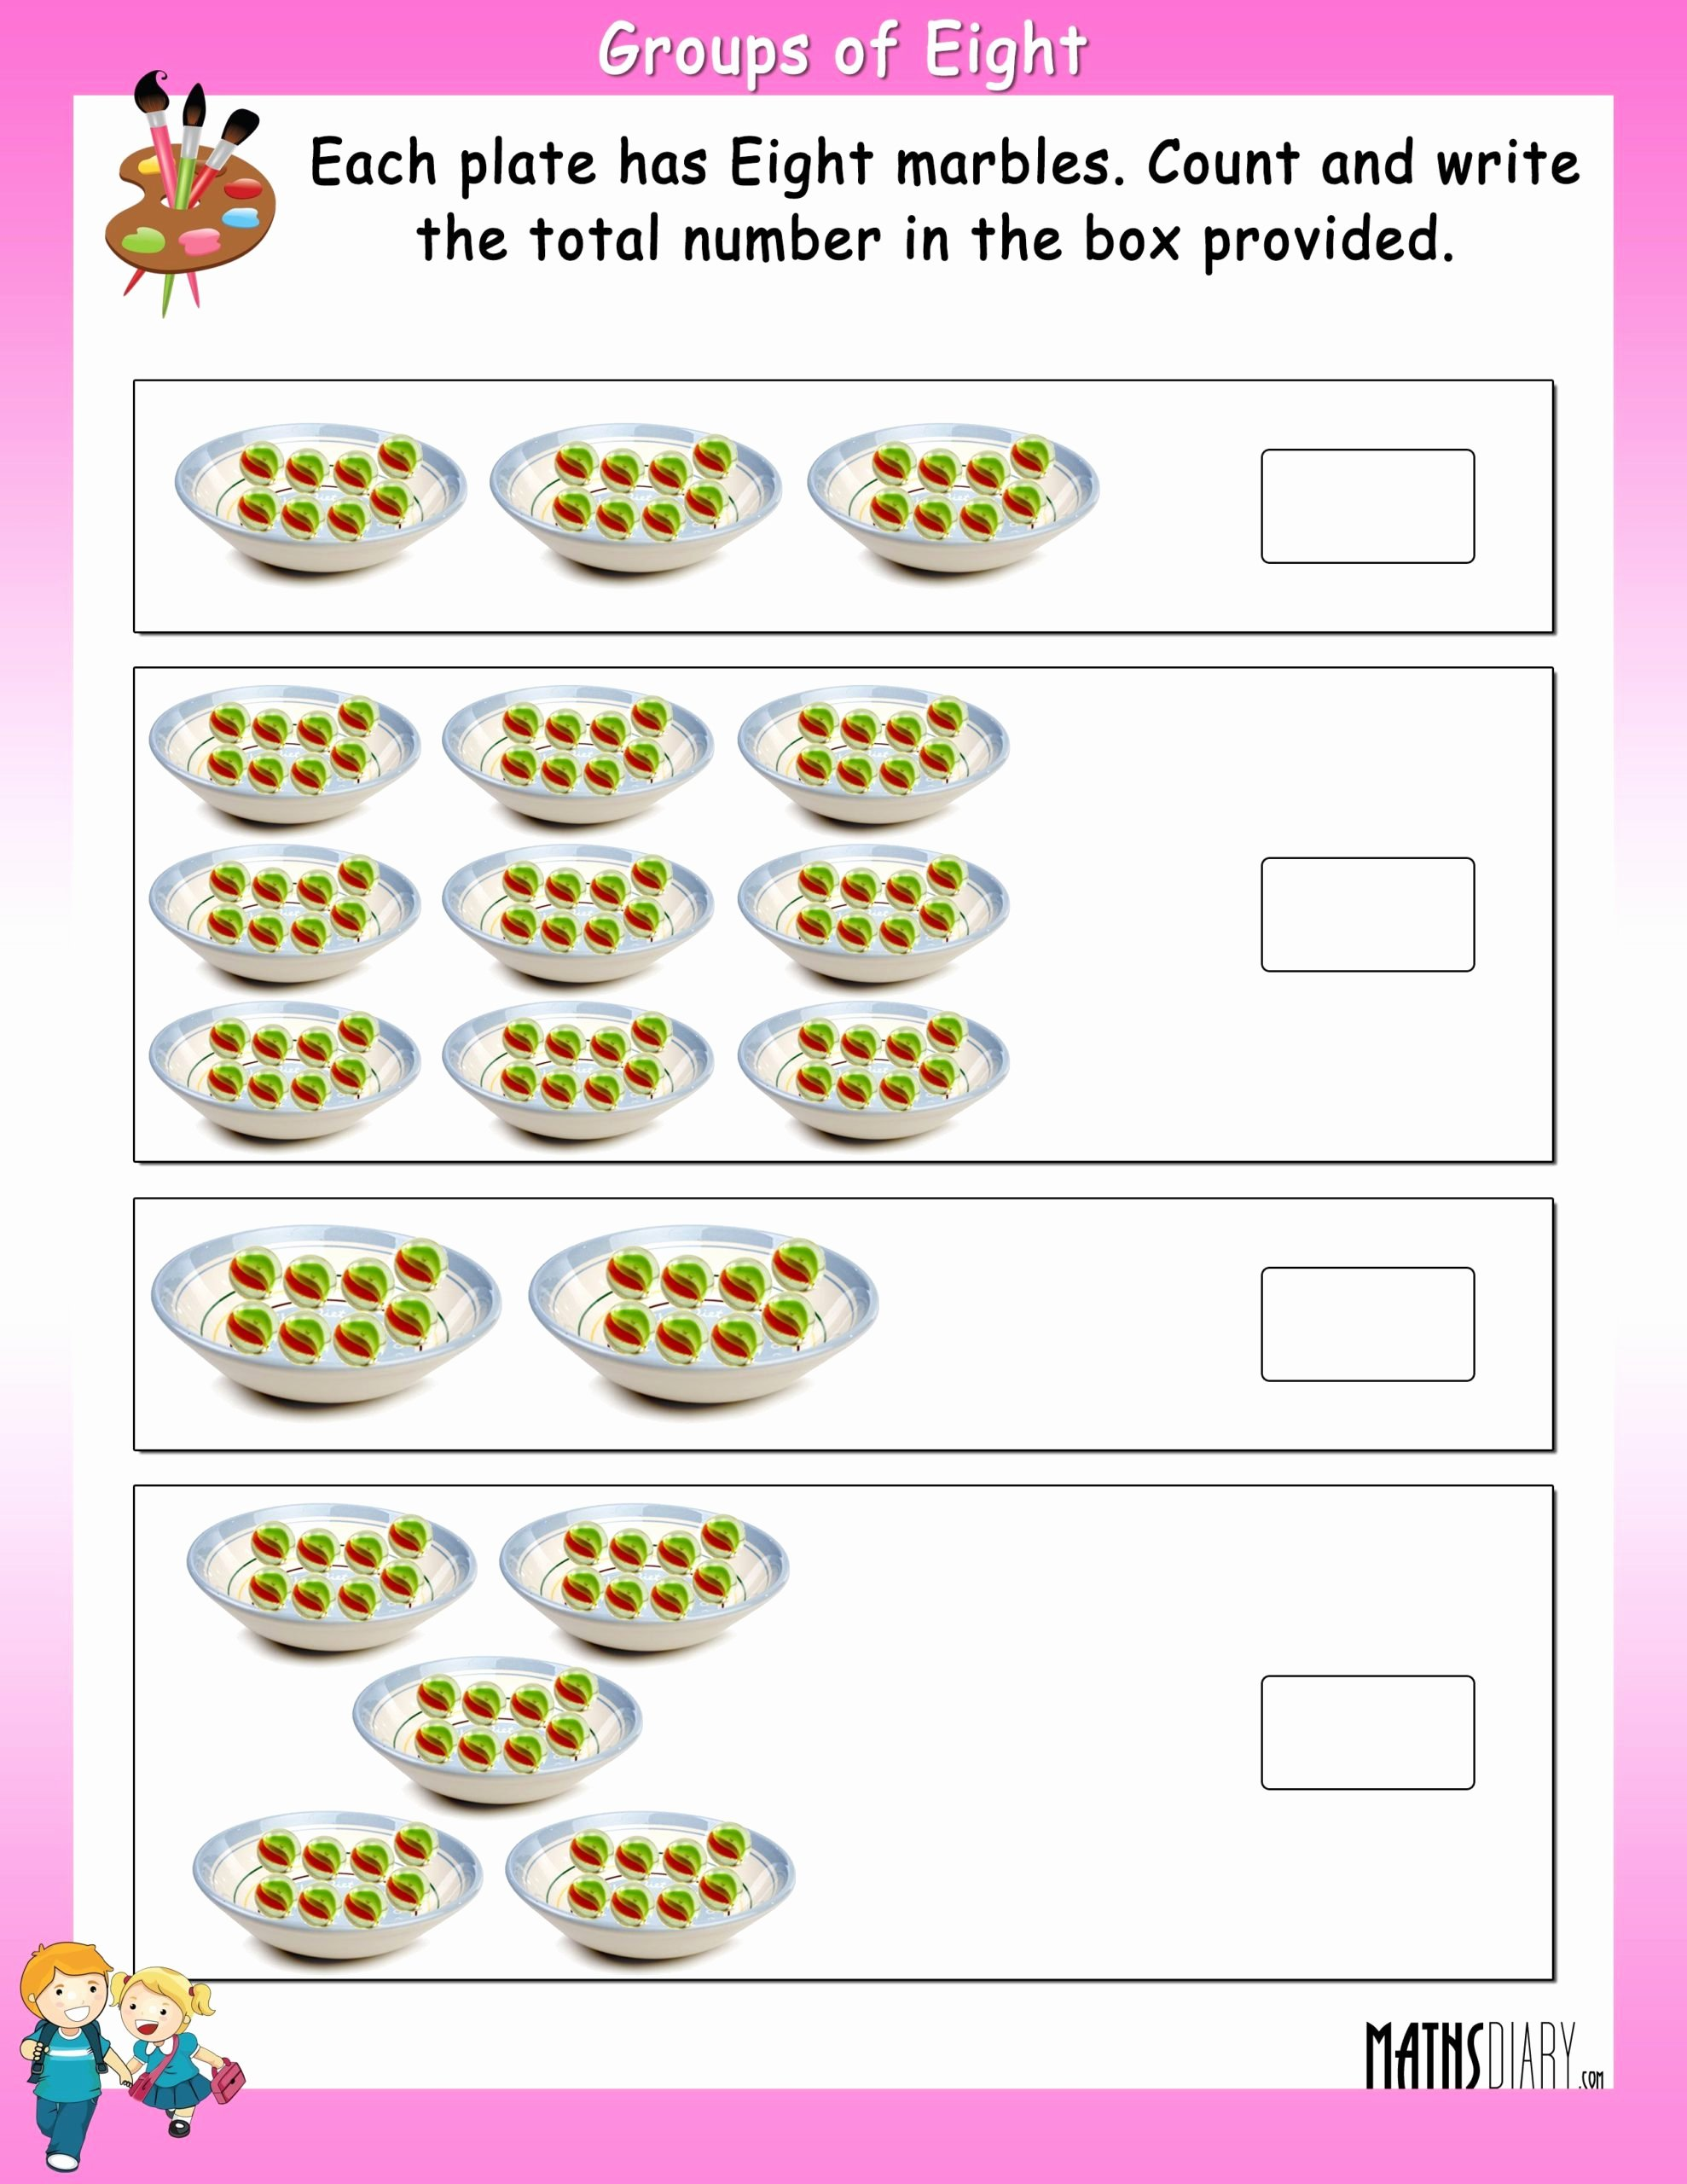 Multiplication Worksheets for Grade 2 Awesome Math Worksheet Multiplicationheets for Grade Groups